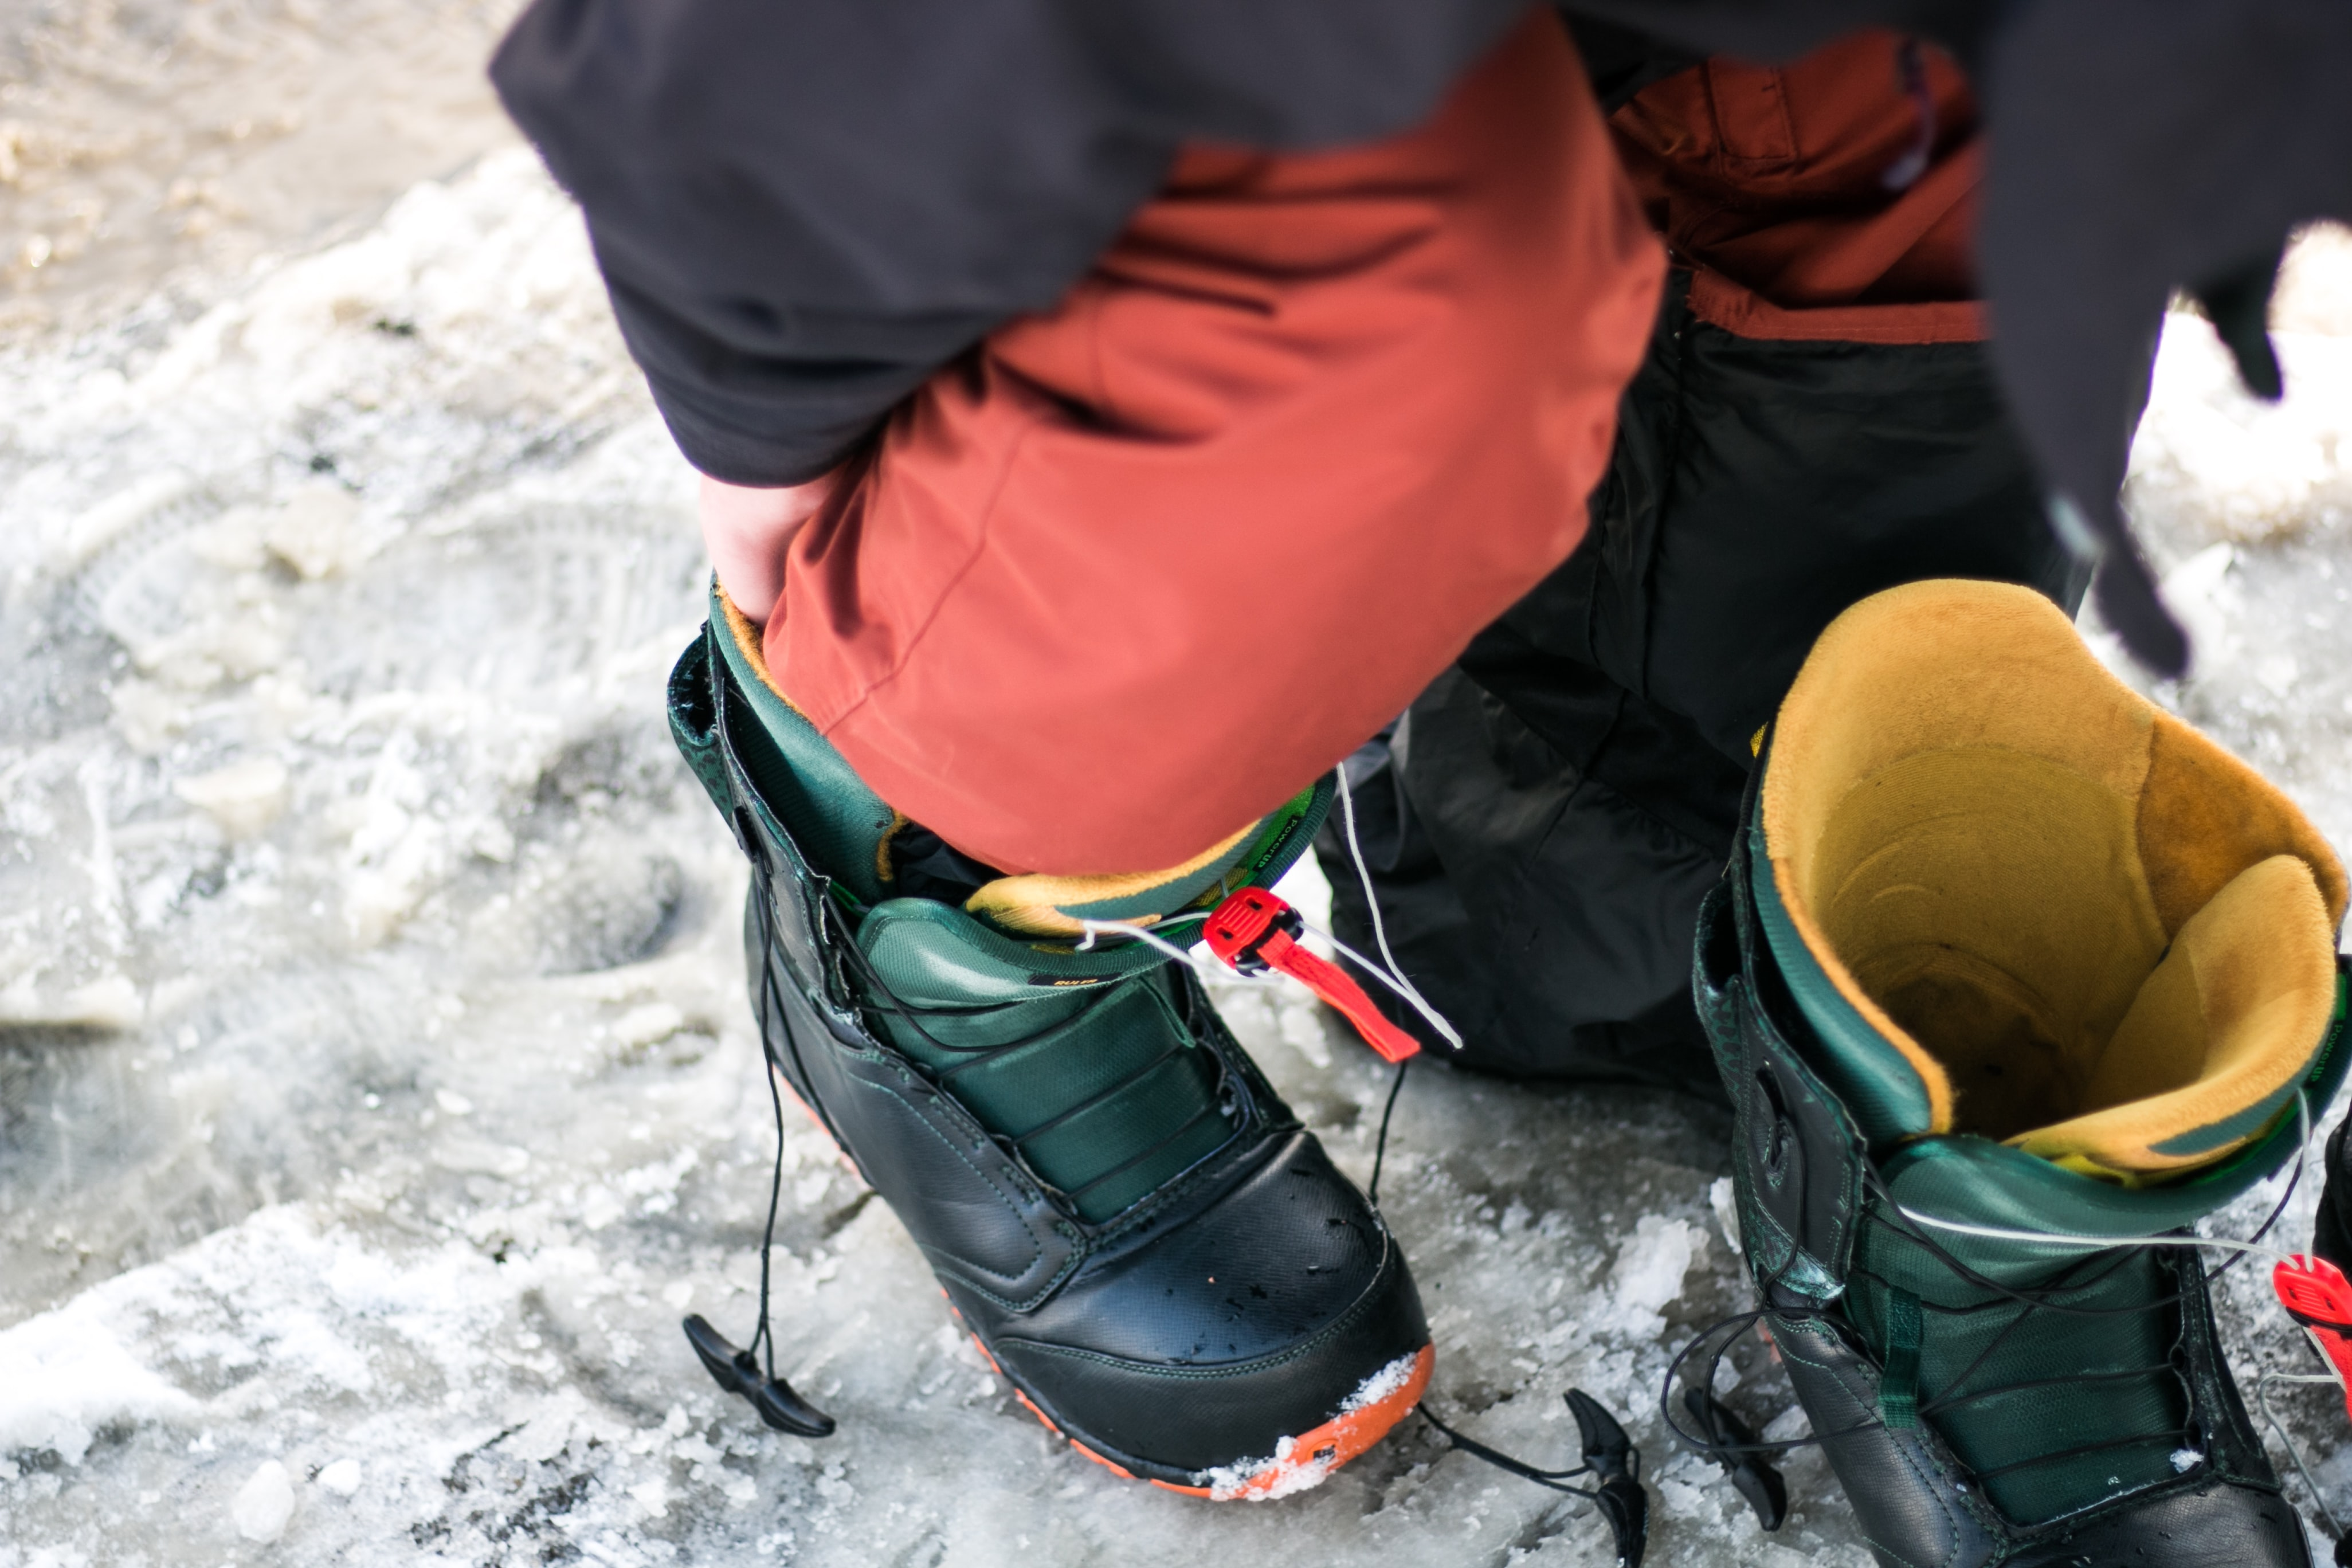 Hiker puts on hiking boots and gear before a trek through the snow